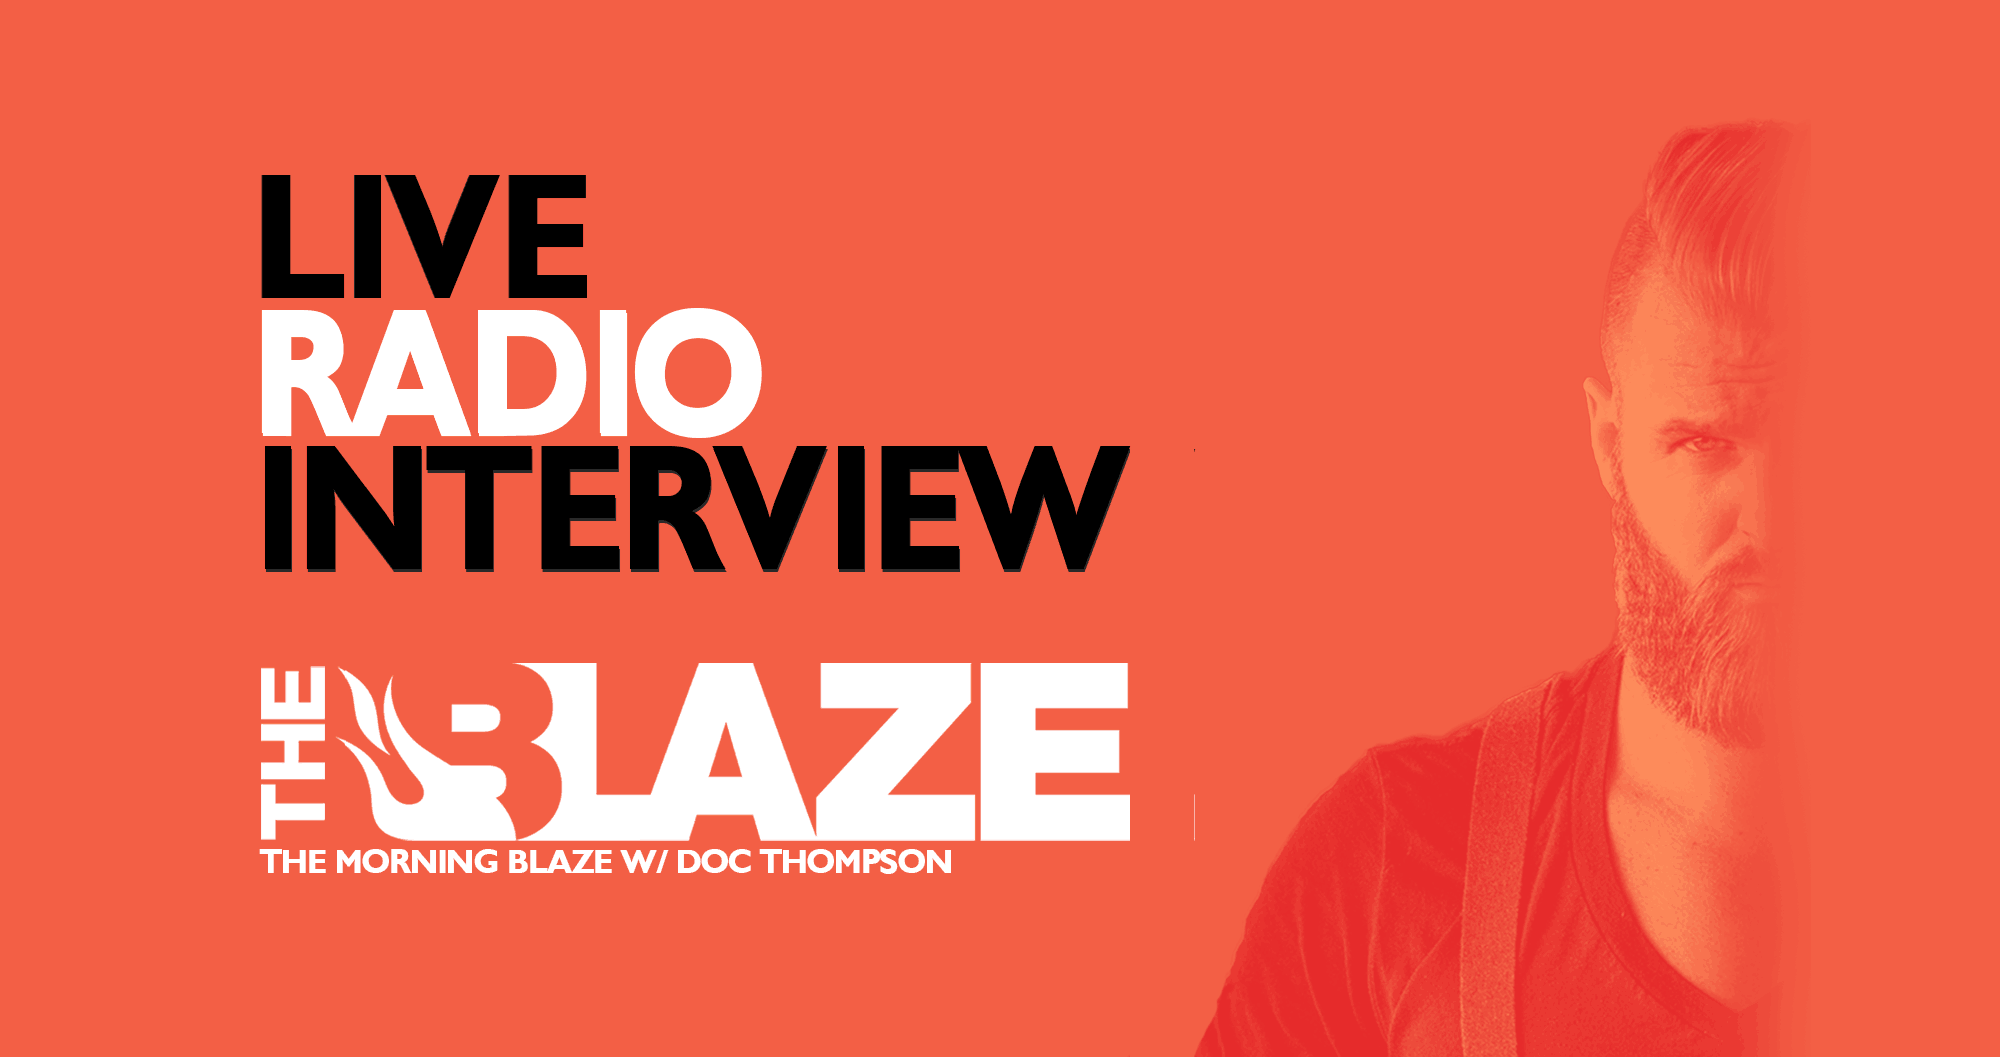 My Live Radio Interview On The Morning Blaze #BUILDINGAMERICA